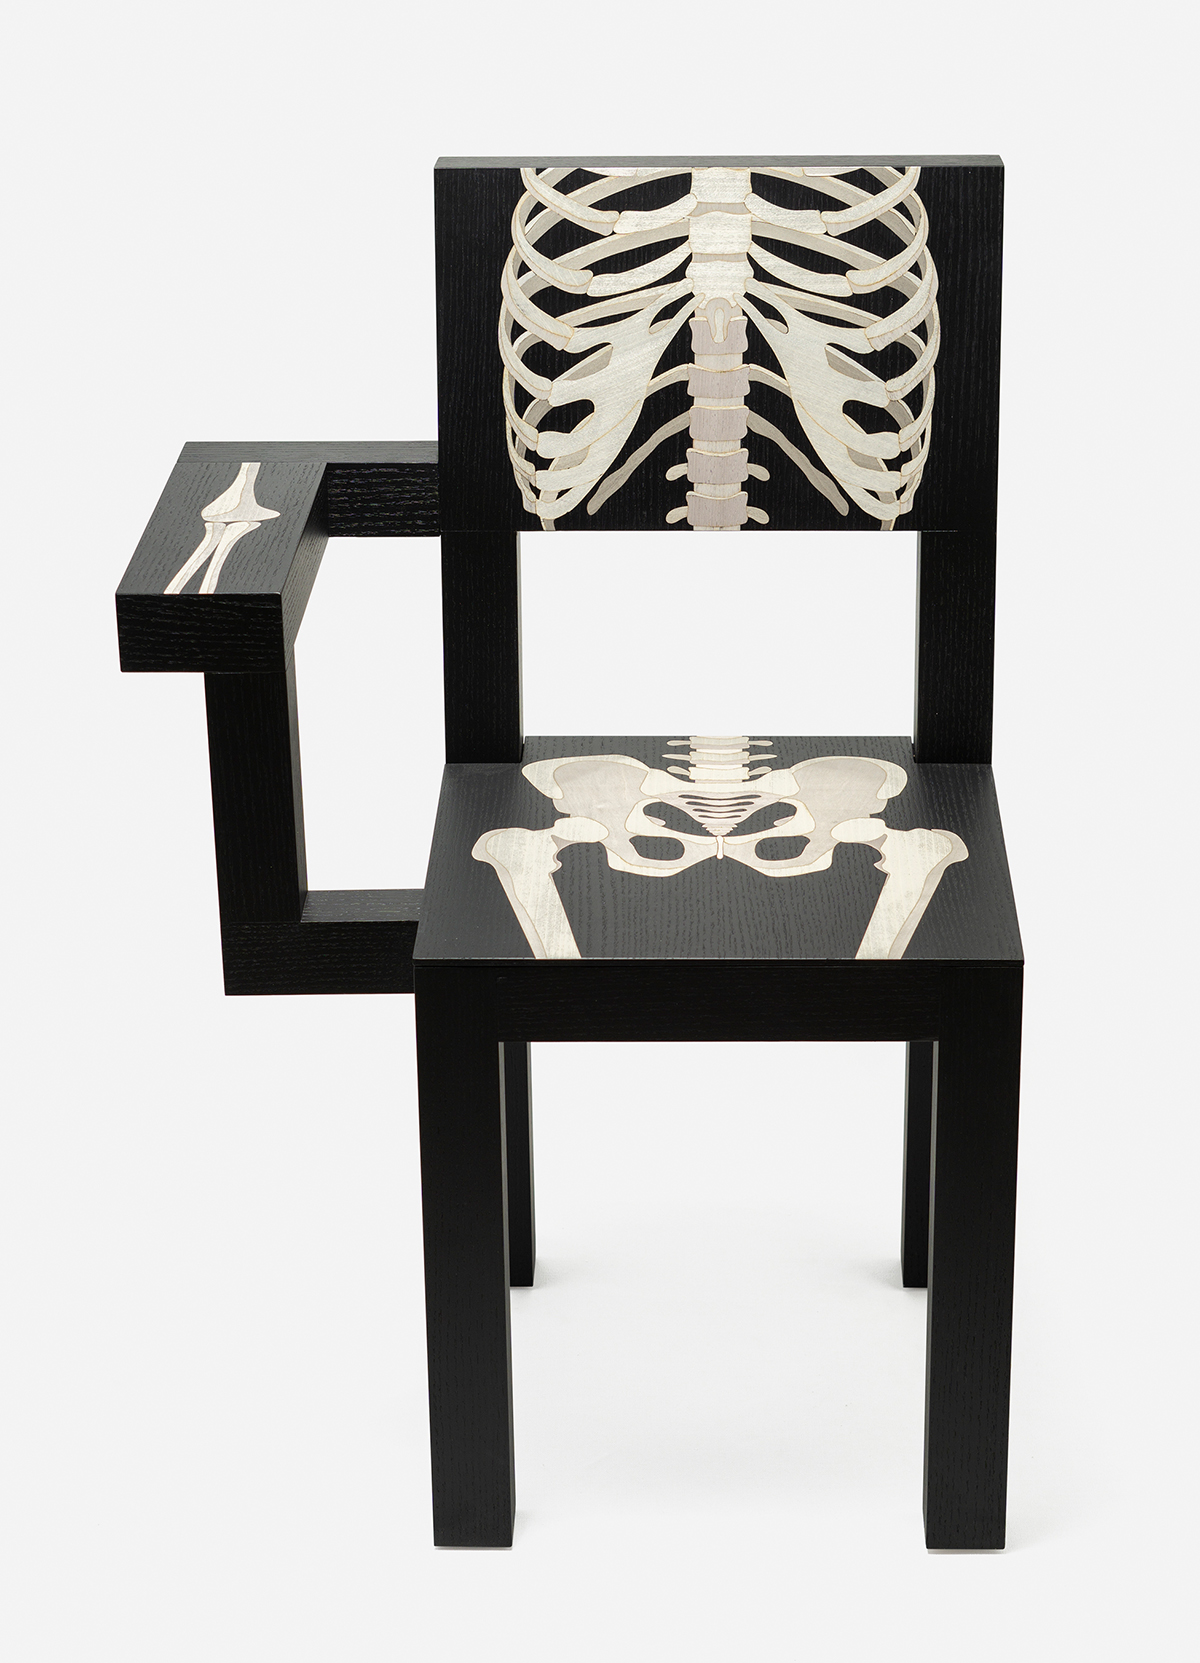 SKELETON CHAIR - Marcantonio design